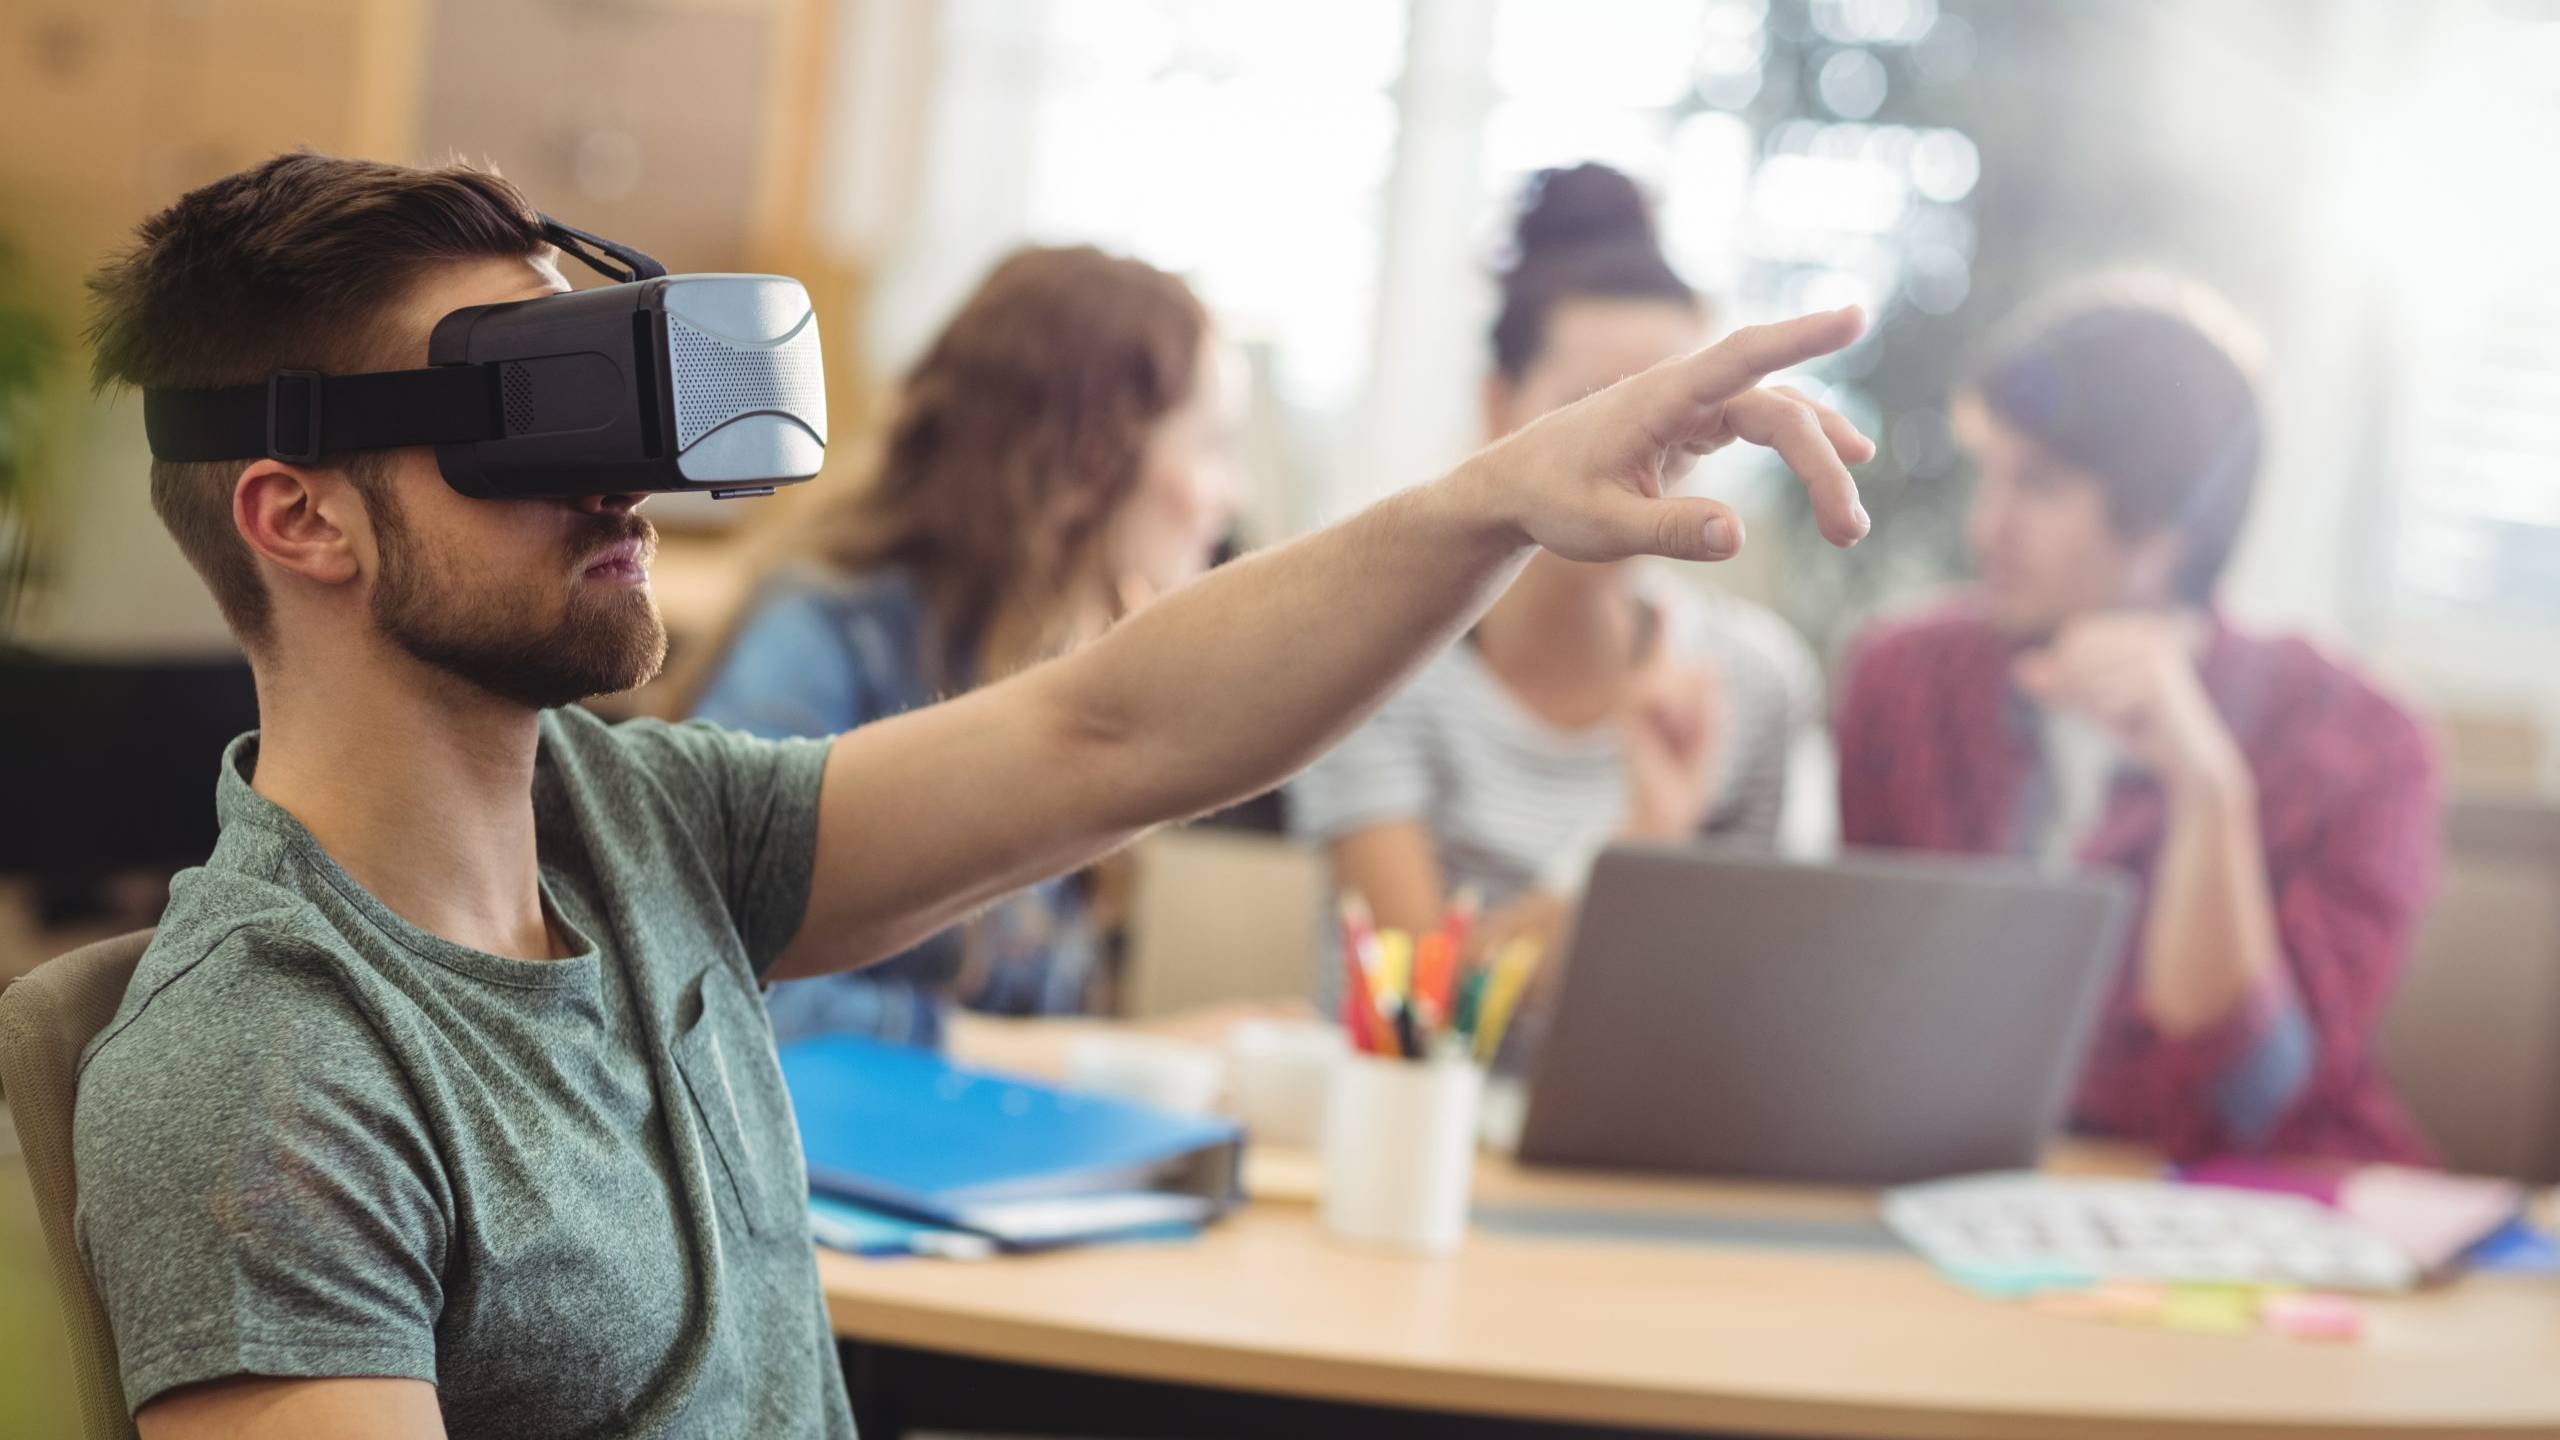 Male business executive using virtual reality headset in the office e-learning